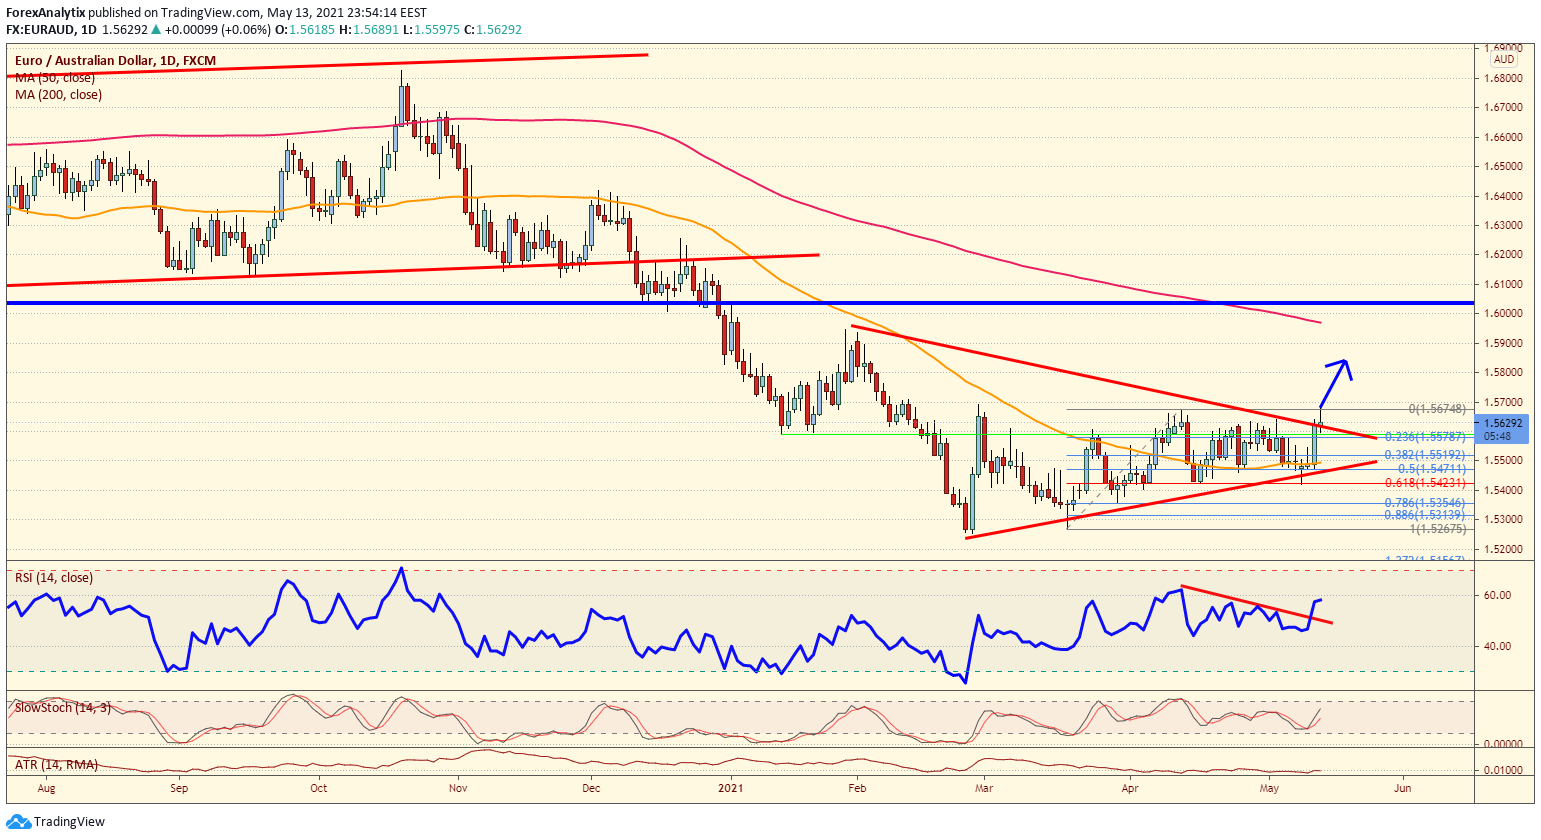 EUR/AUD Daily Chart.